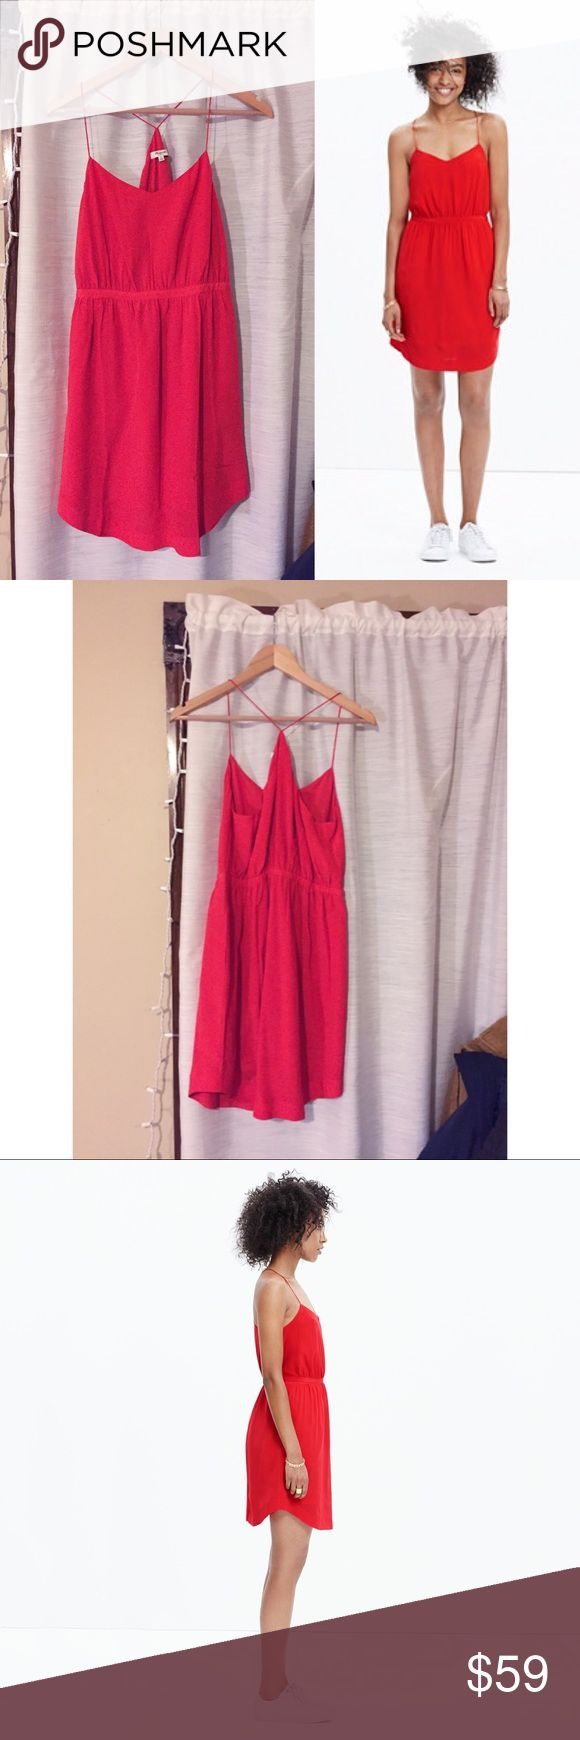 Madewell Silk Starview Cami Dress New with tags! This 100% silk cami dress is an awesome sunny red, effortless and flattering. And it has pockets! A versatile silhouette that works from the office to the rooftop bar to the beach. Madewell Dresses